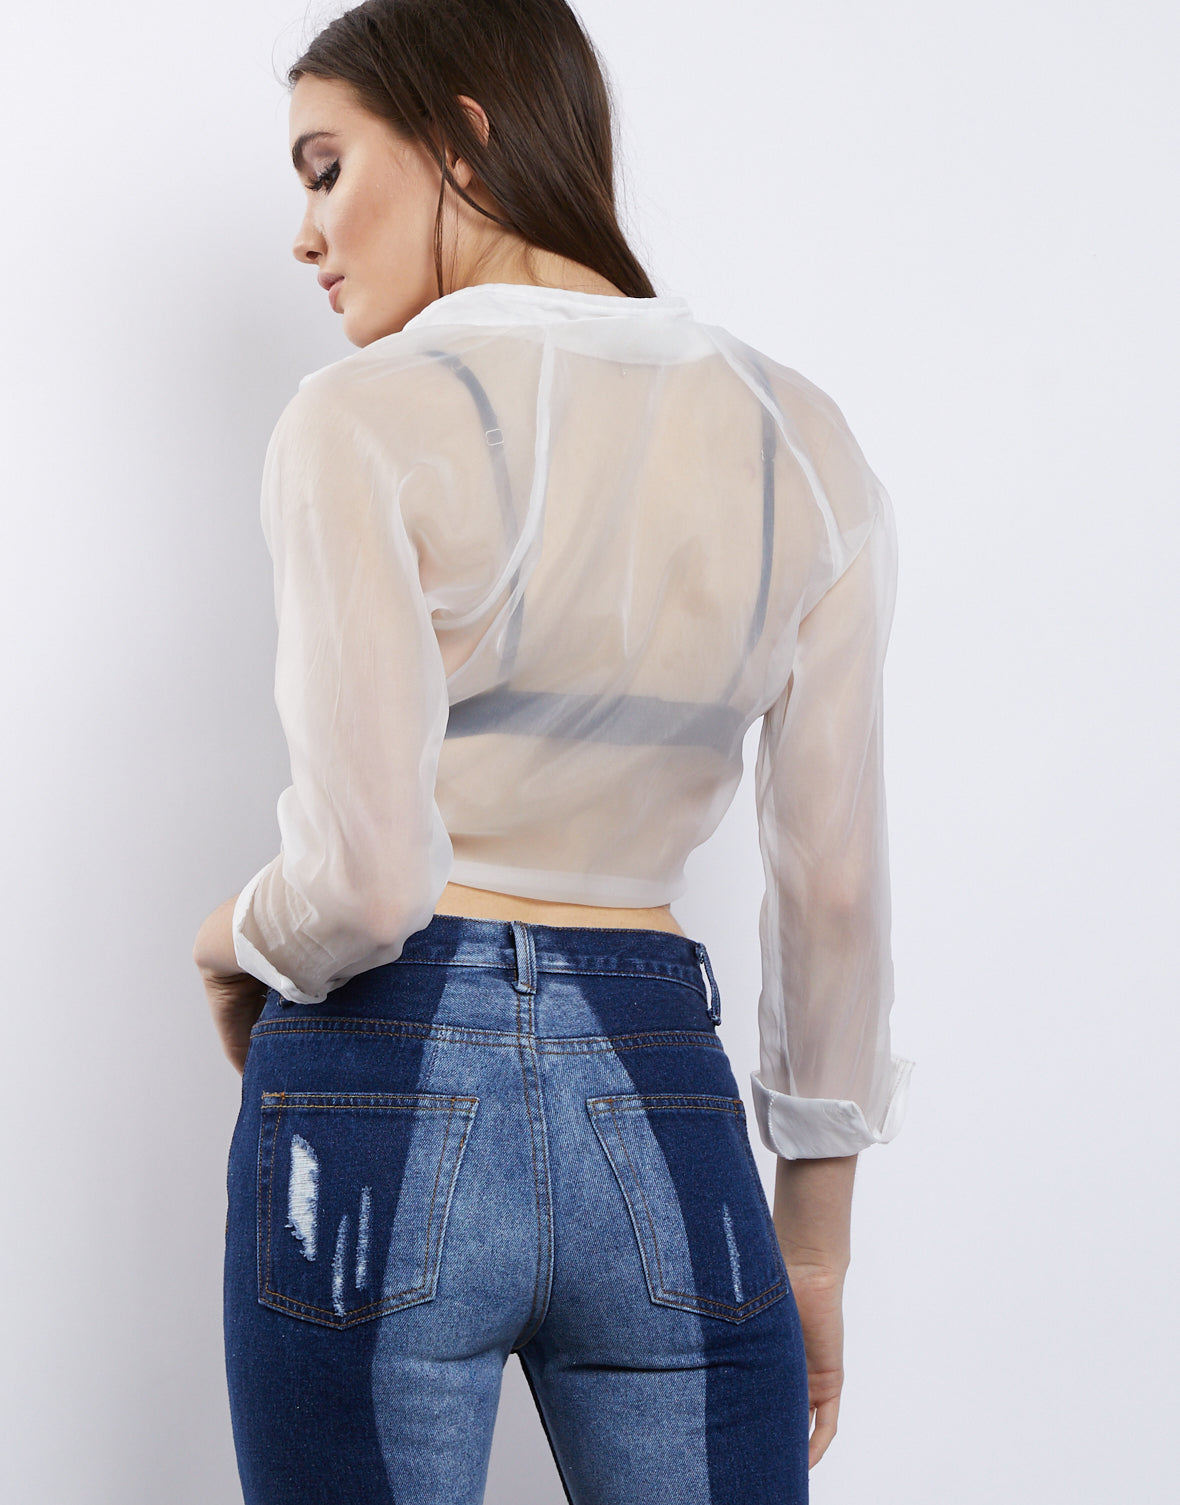 Sheer's The One Tie Front Crop Top